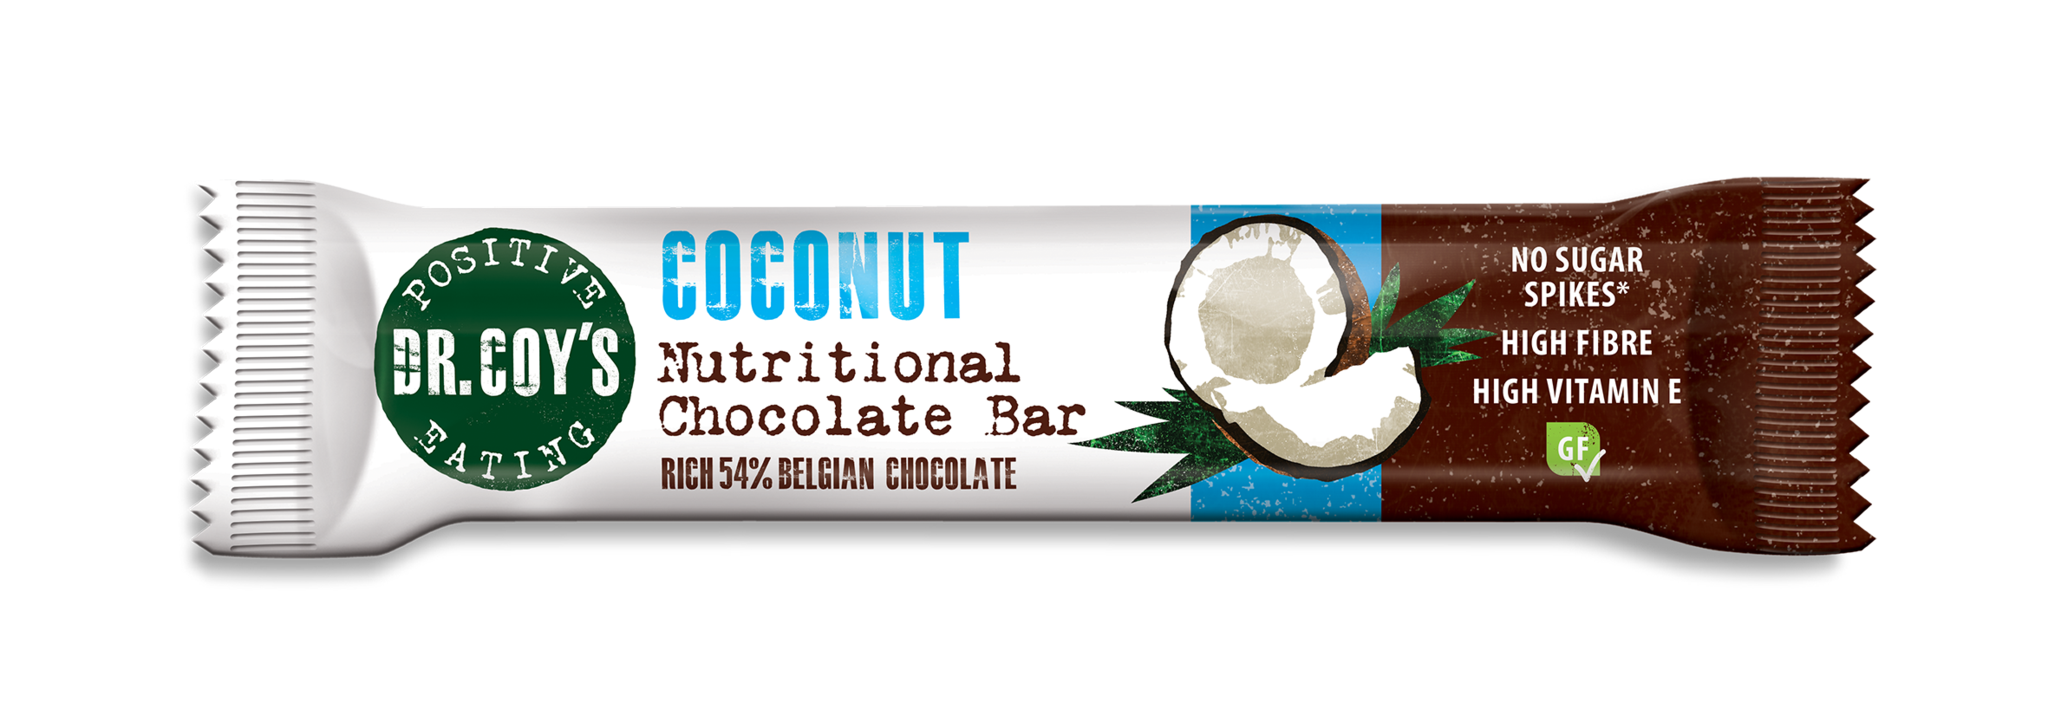 Dr Coys Nutritional Chocolate Bar - Coconut